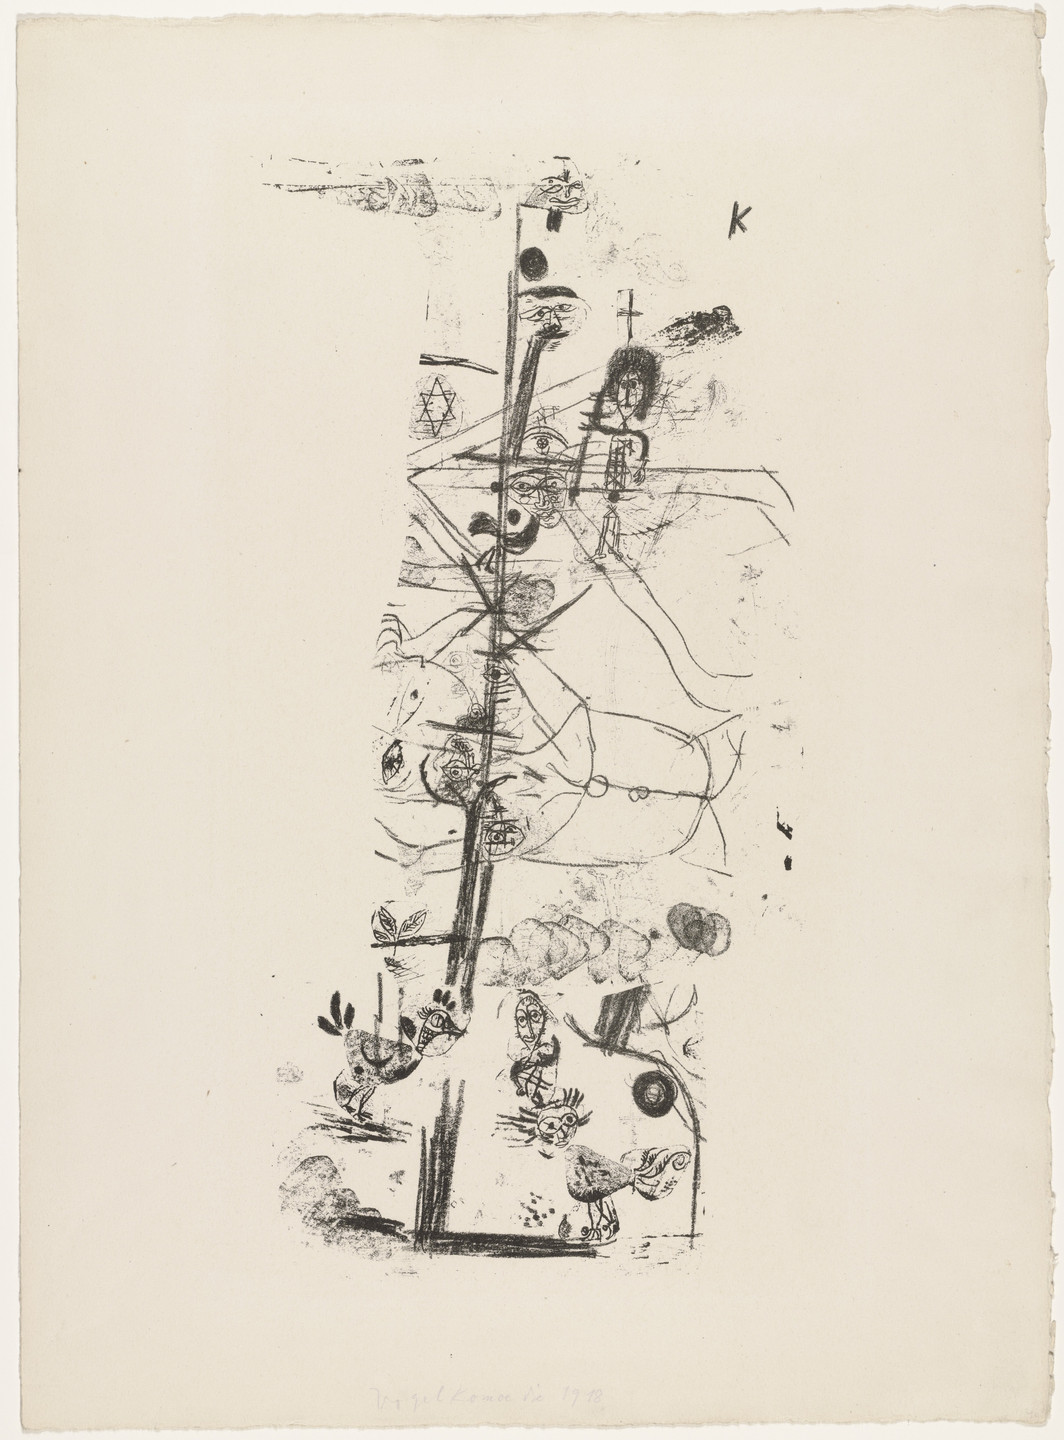 Paul Klee. Comedy of Birds (Vogelkomödie) for the portfolio 25 Original Lithographs by the Munich New Secession (25 Original-Lithographien der Münchener Neuen Secession). 1918